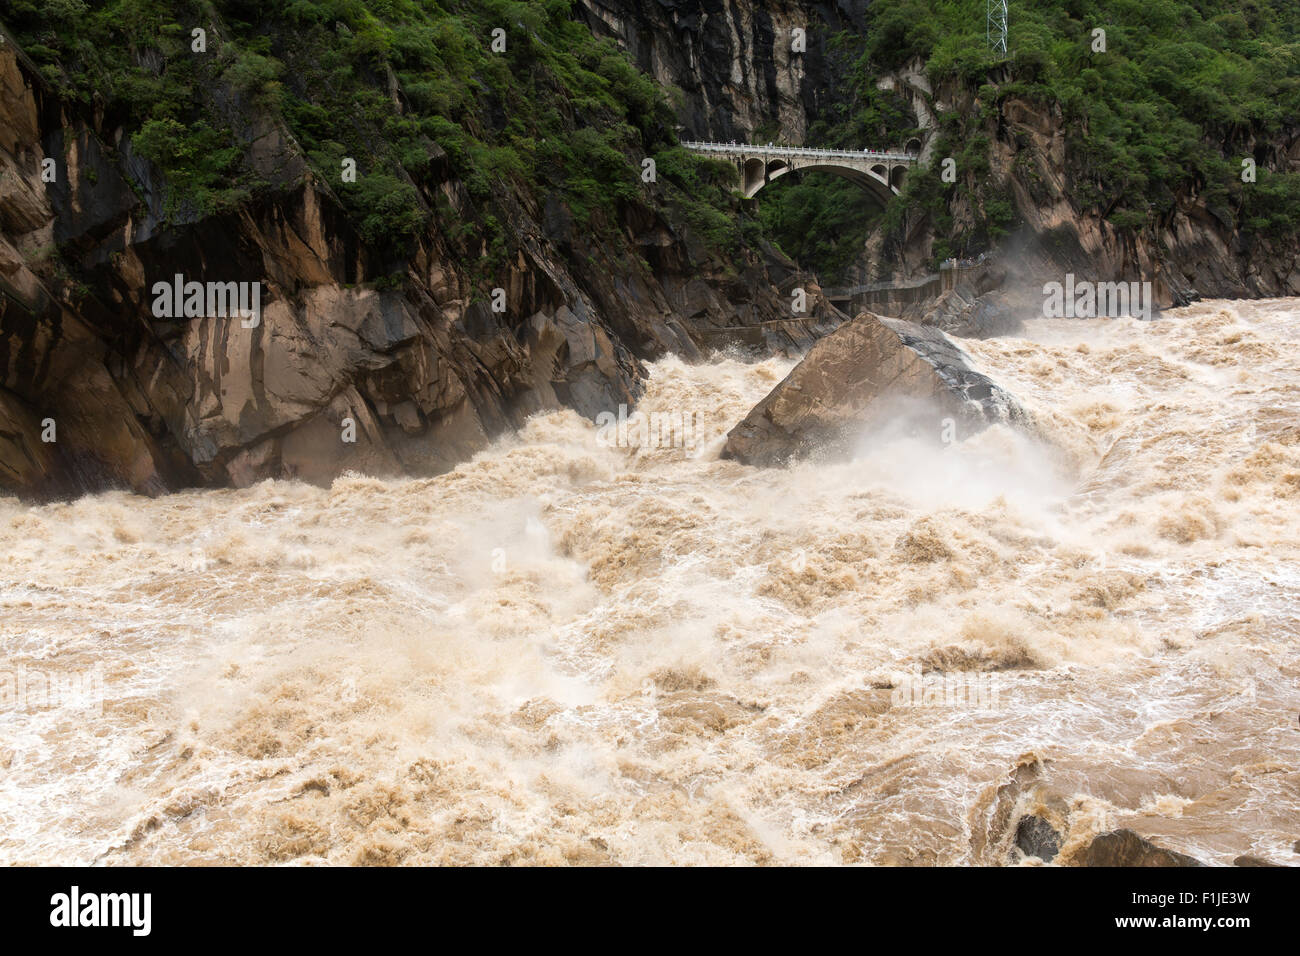 Tiger Leaping Gorge in Lijiang, Yunnan Province, China. - Stock Image